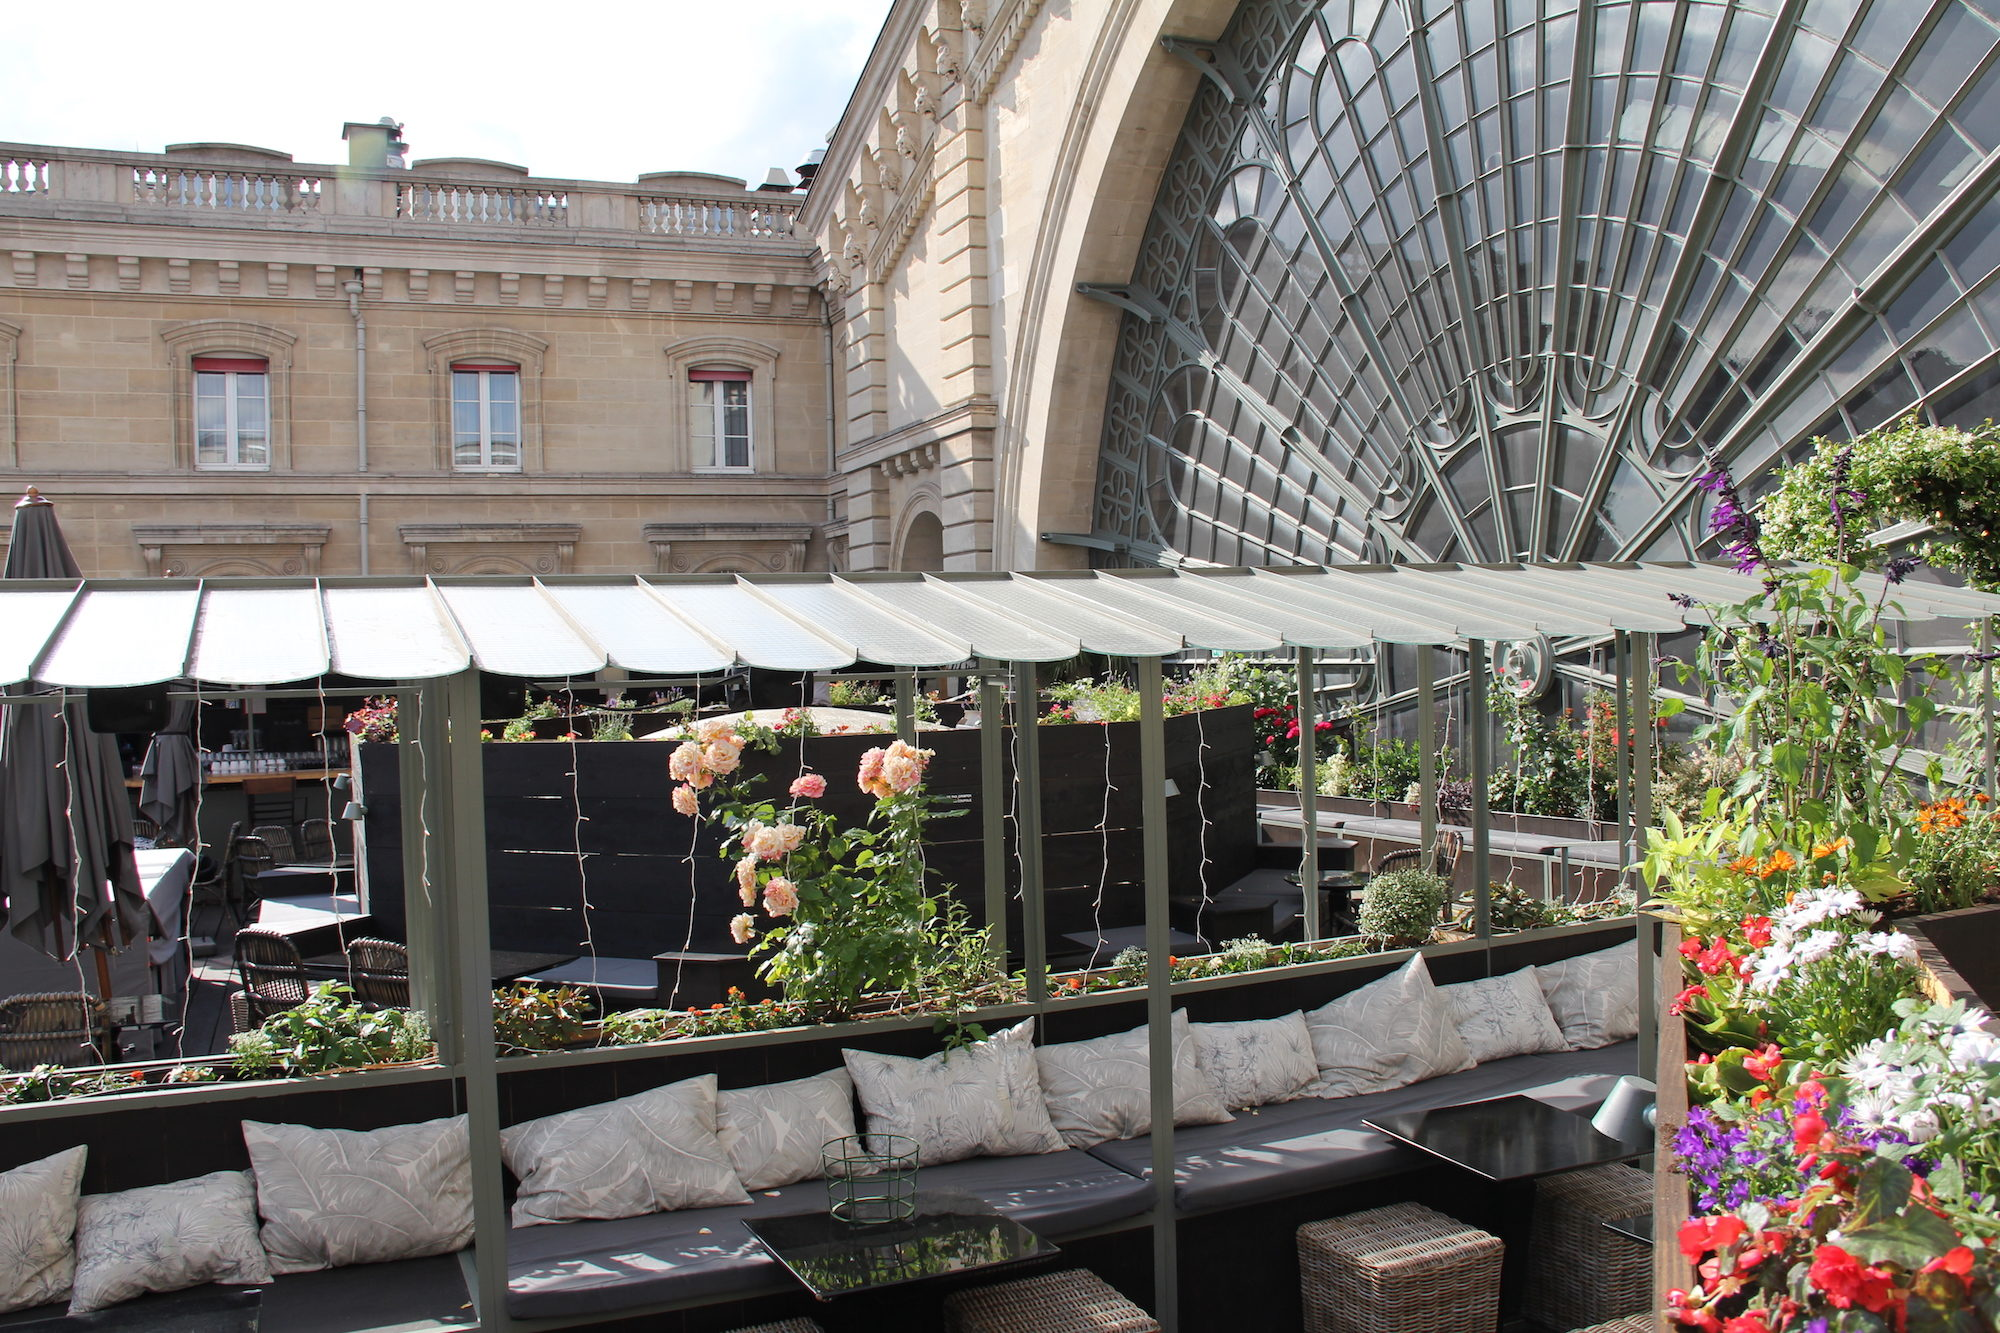 HiP Paris Blog go-to rooftop bar in Paris is Le Perchoir at Gare de l'Est with his flower gardens and relaxed atmosphere.